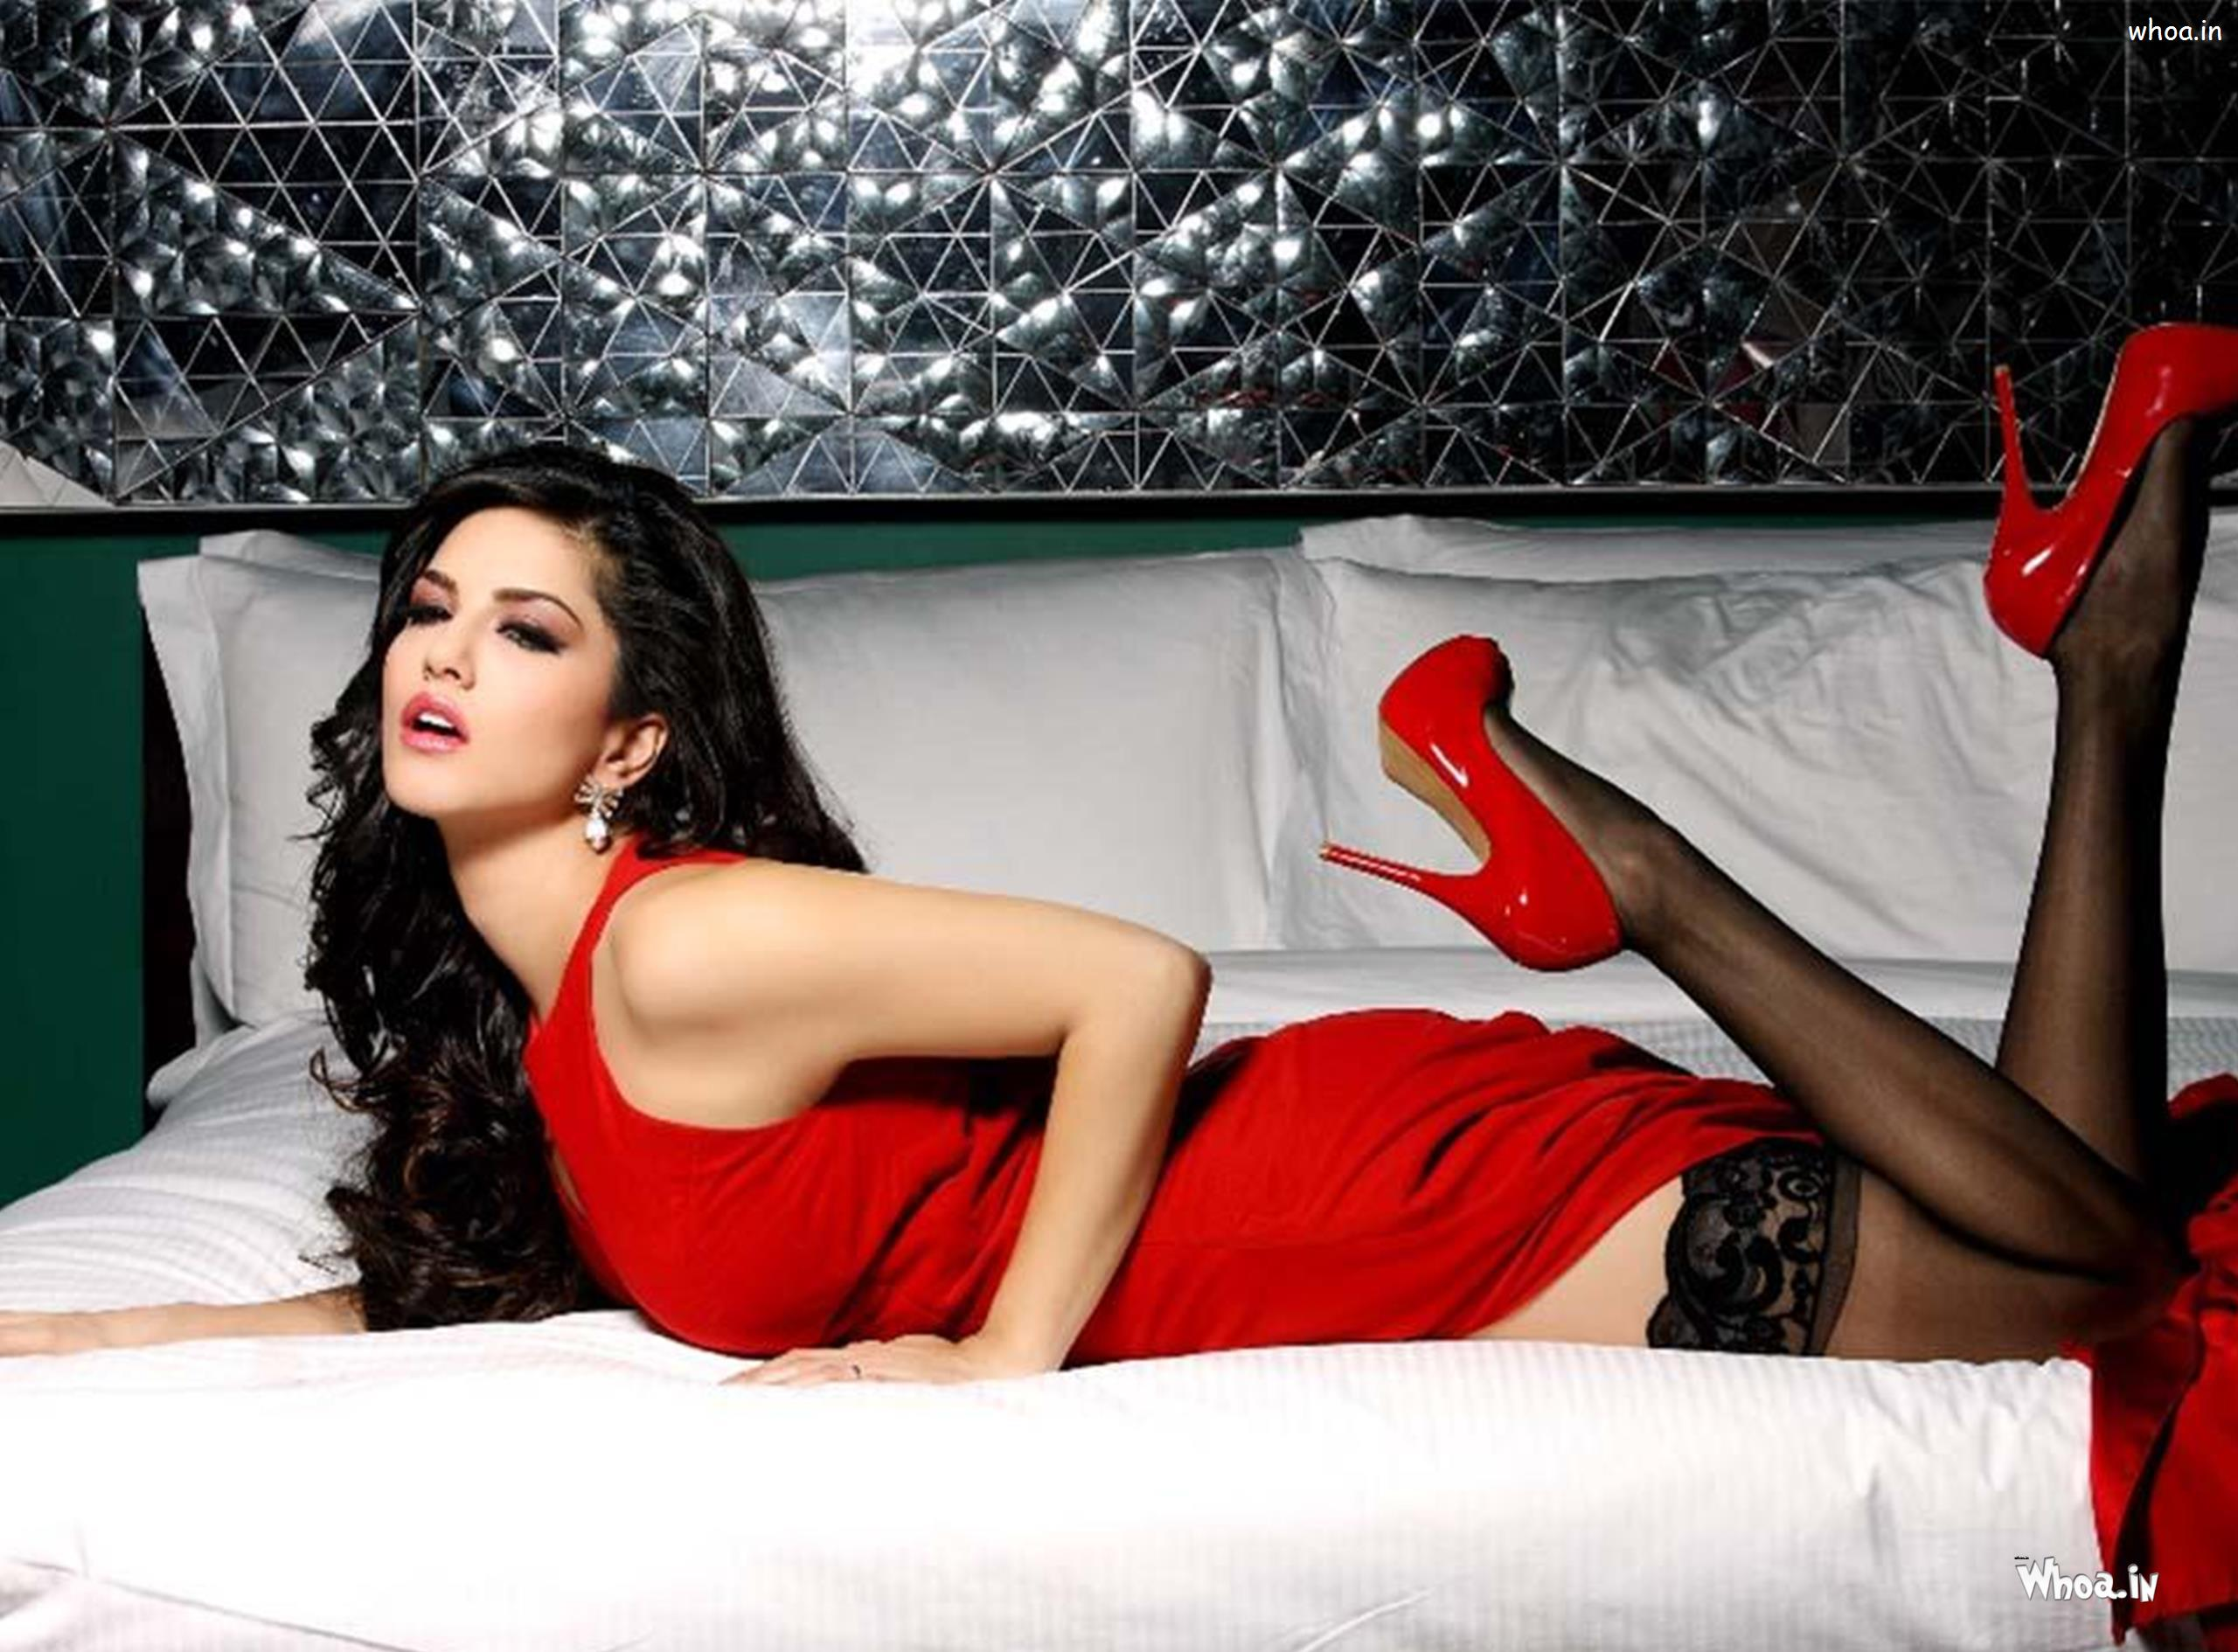 Sunny Leone Red Top Hd Wallpaper